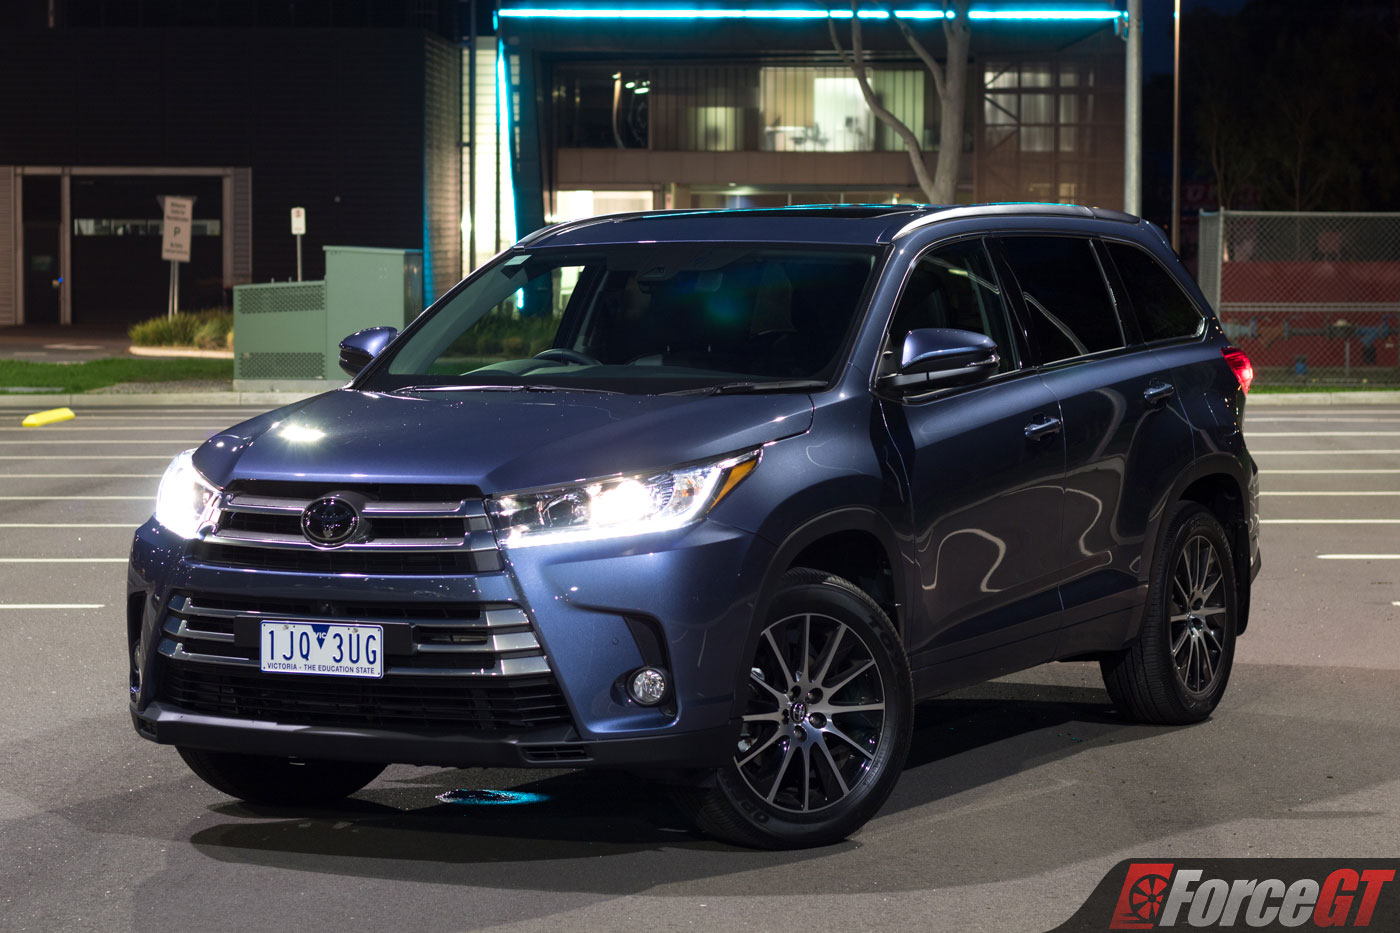 2017 Toyota Kluger Grande AWD Review - ForceGT.com